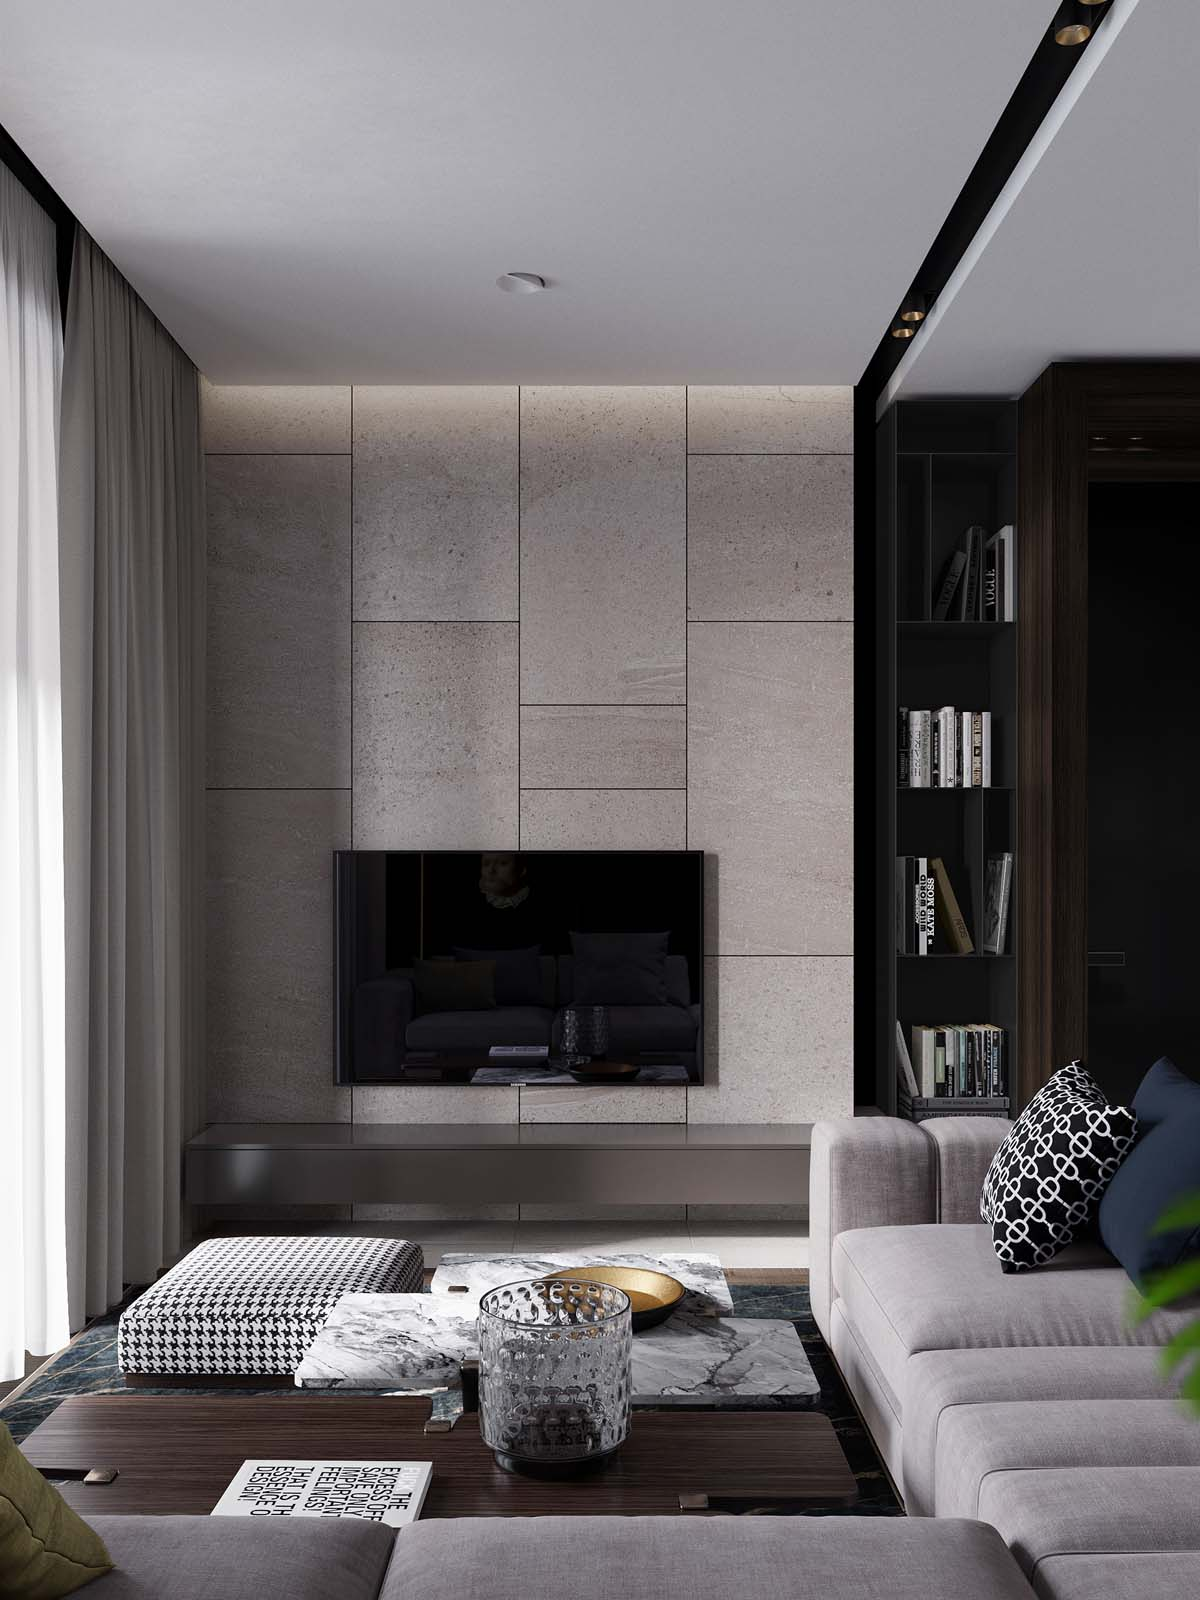 Using Dark Color Schemes For Small Homes: 3 Examples With Floor Plans images 3